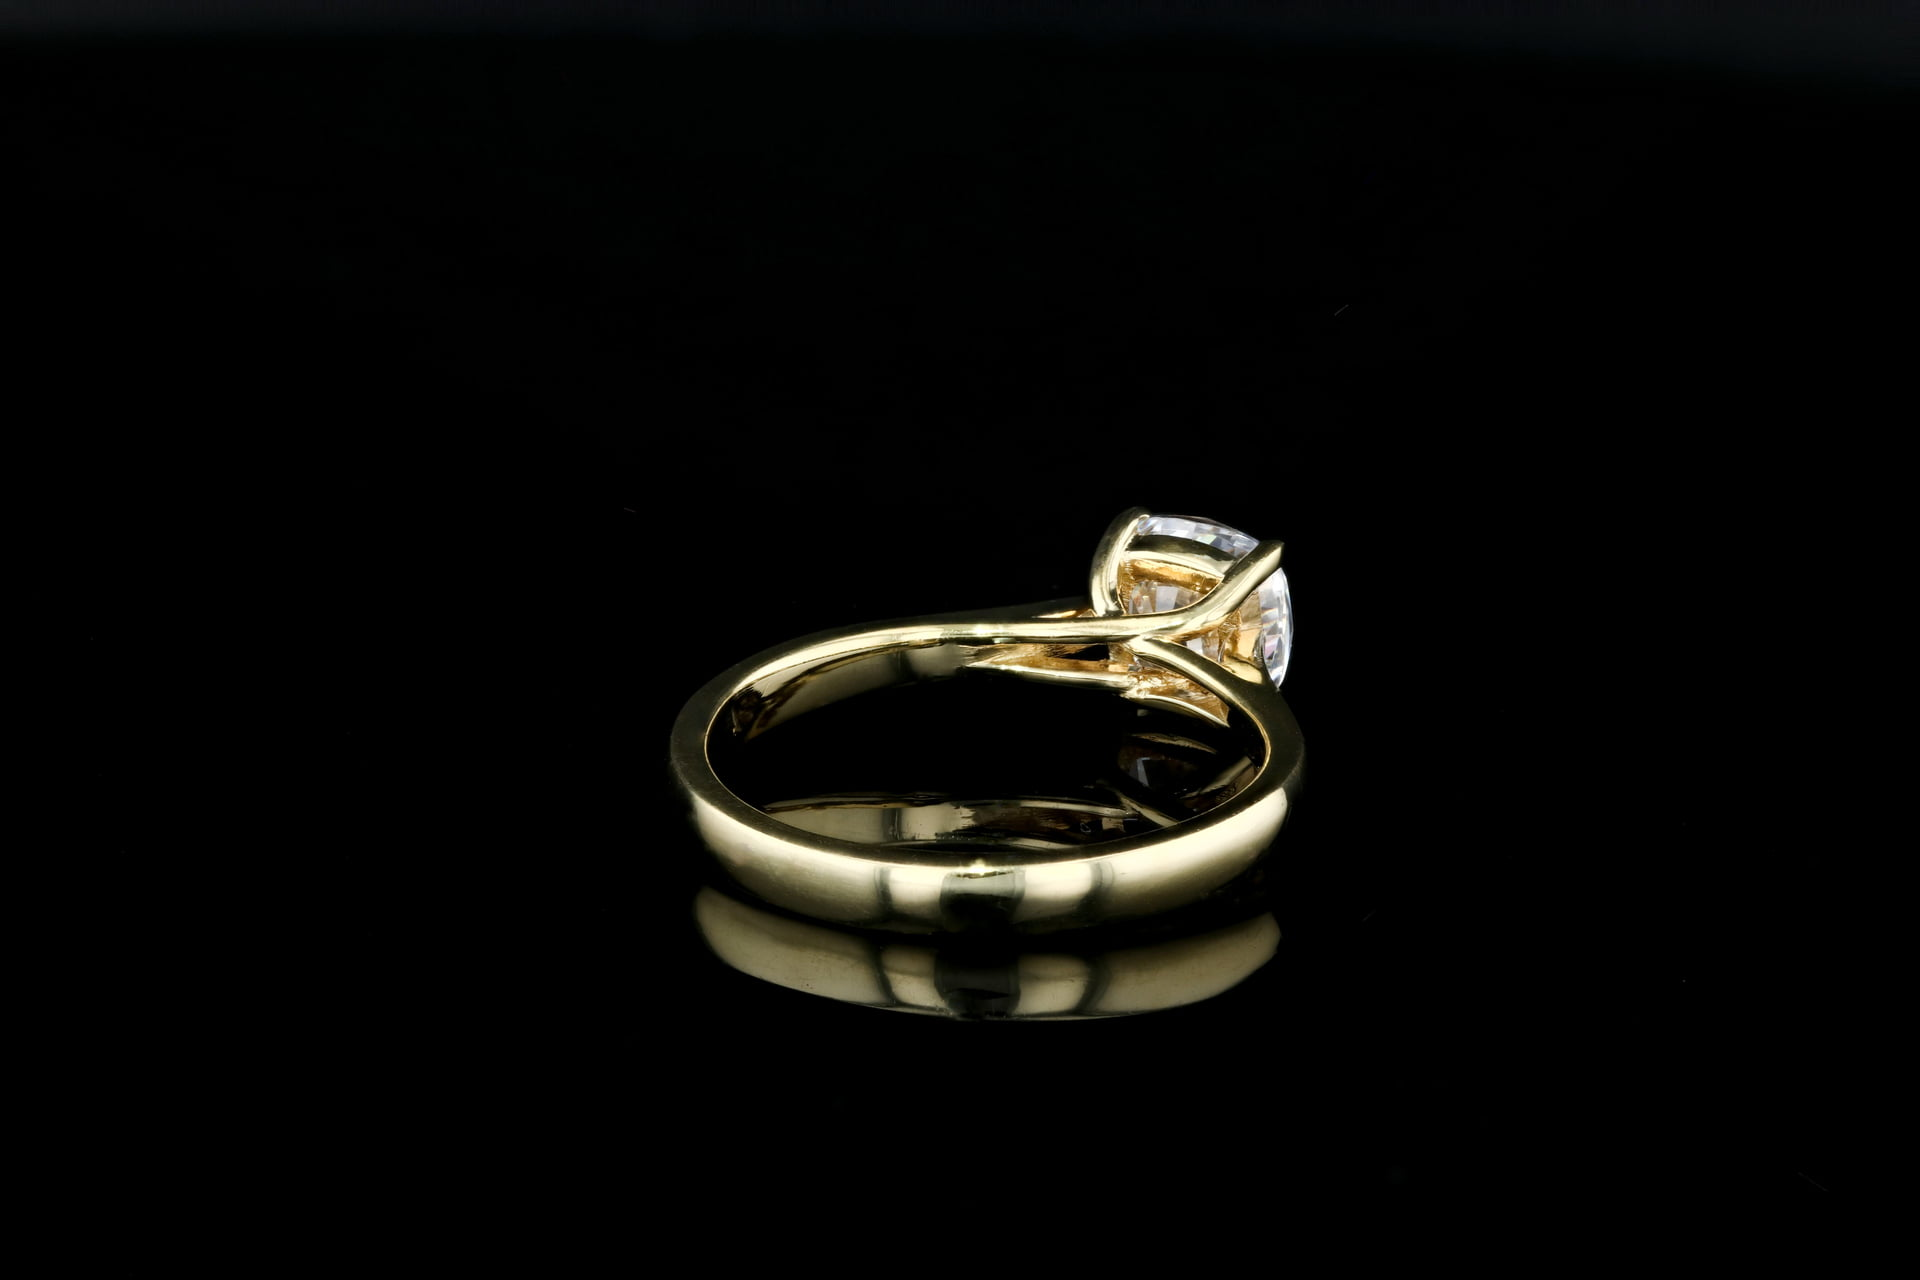 Tapered Solitaire Trellis Prongs Nathan Alan Jewelers